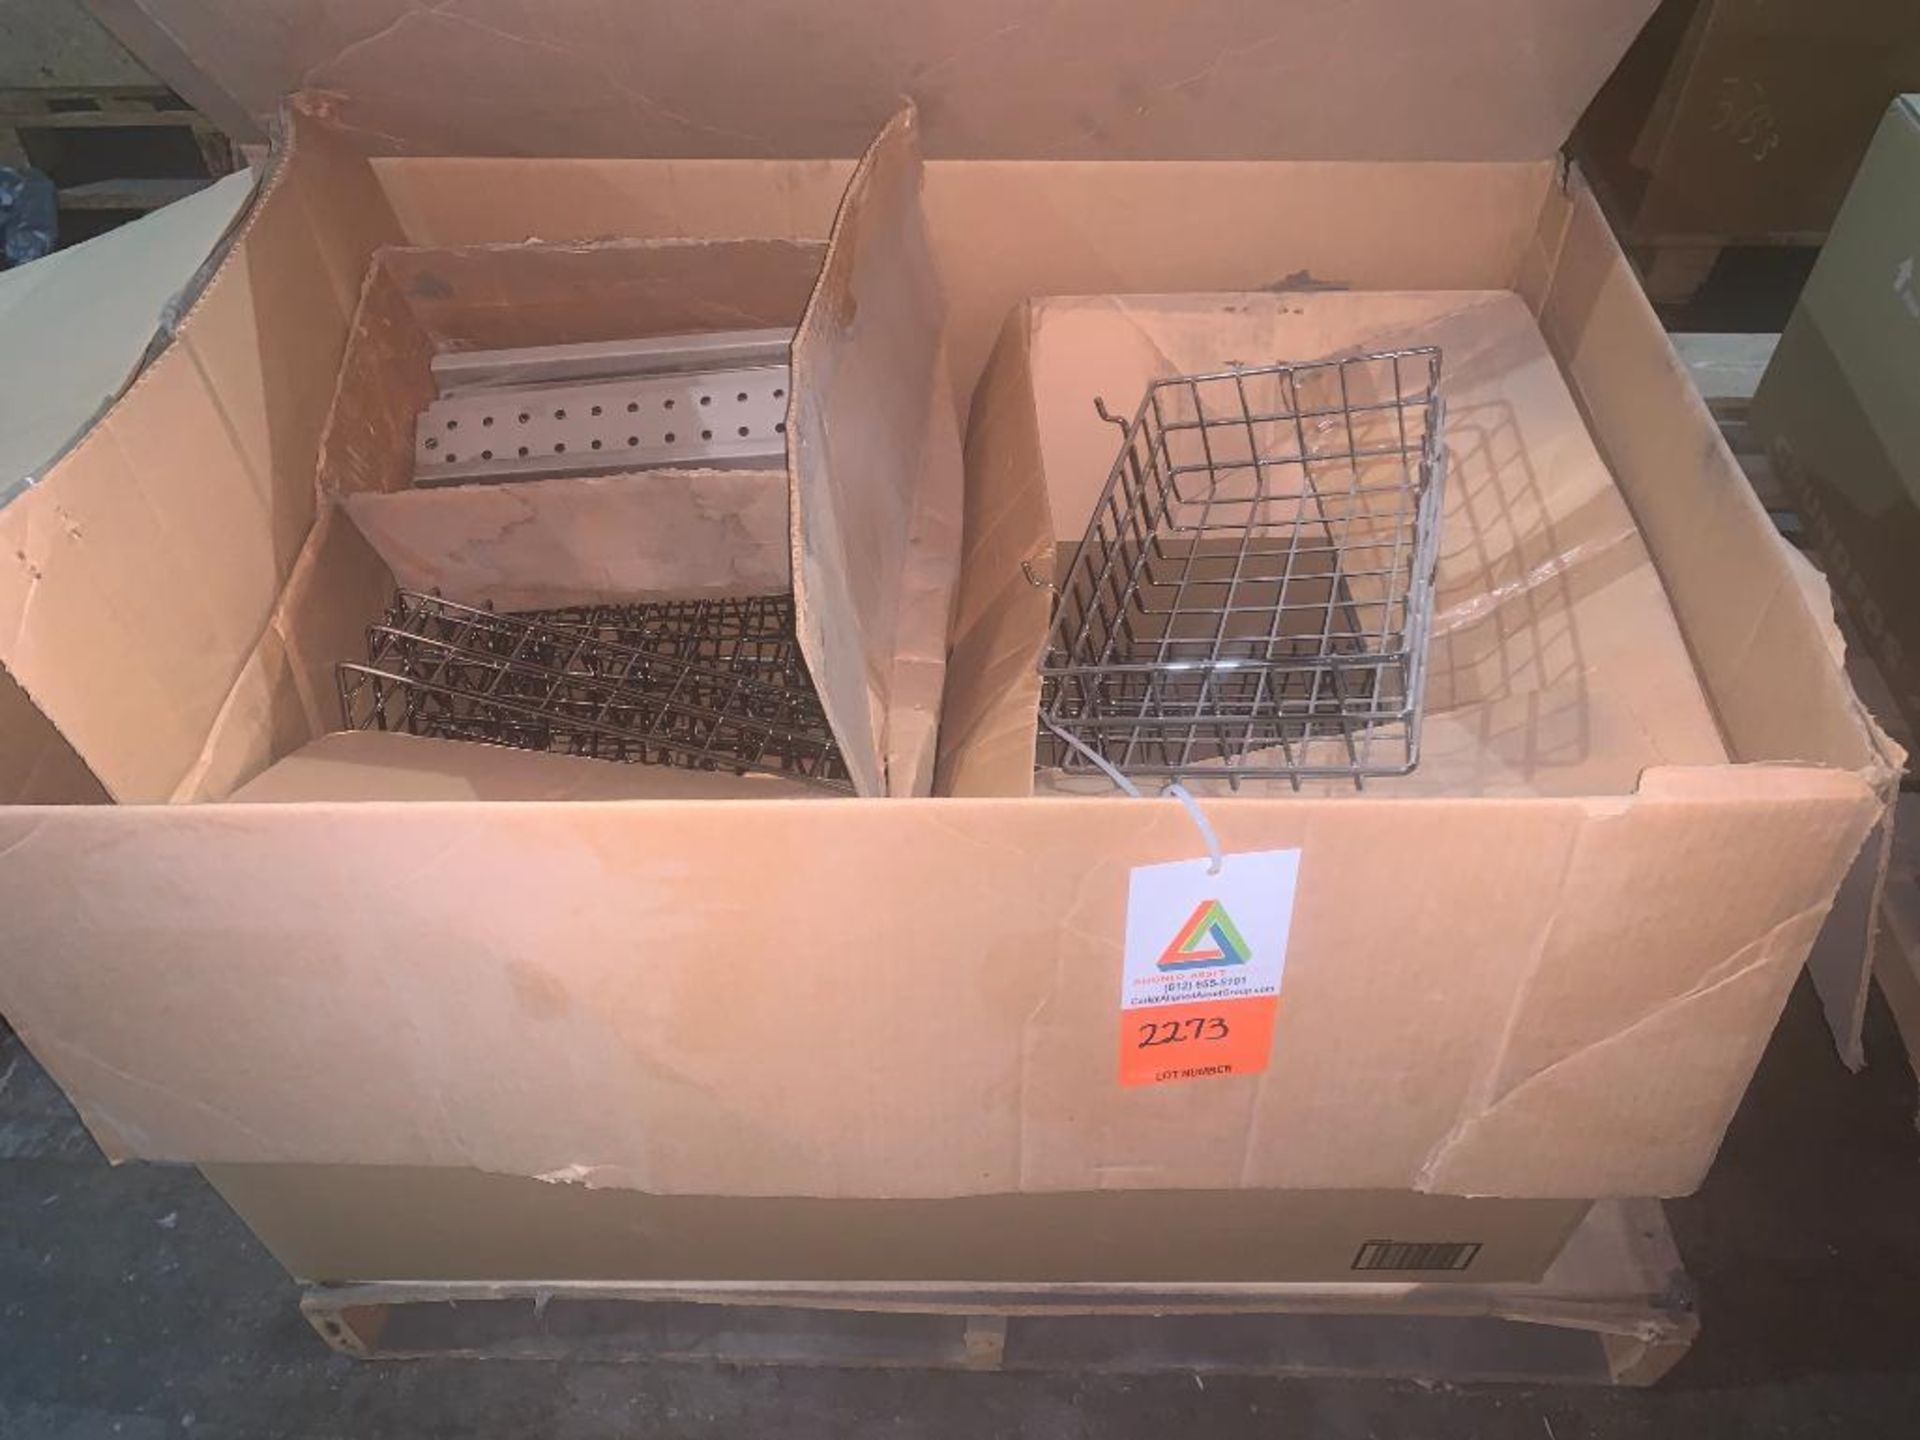 pallet of wire baskets and wire parts